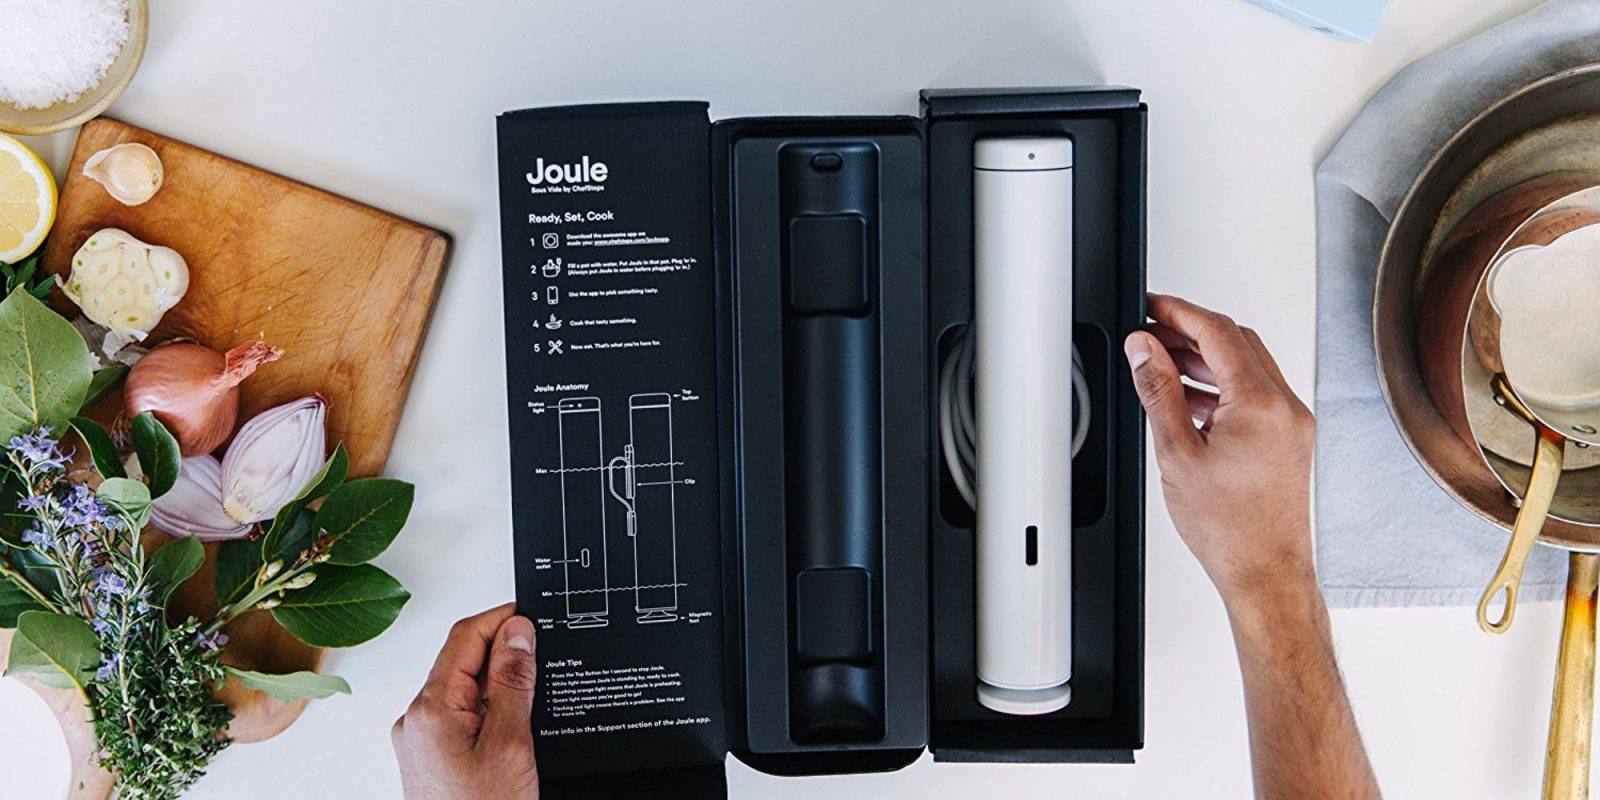 chefsteps cs20001 joule sous vide drops to 149 shipped 30 off